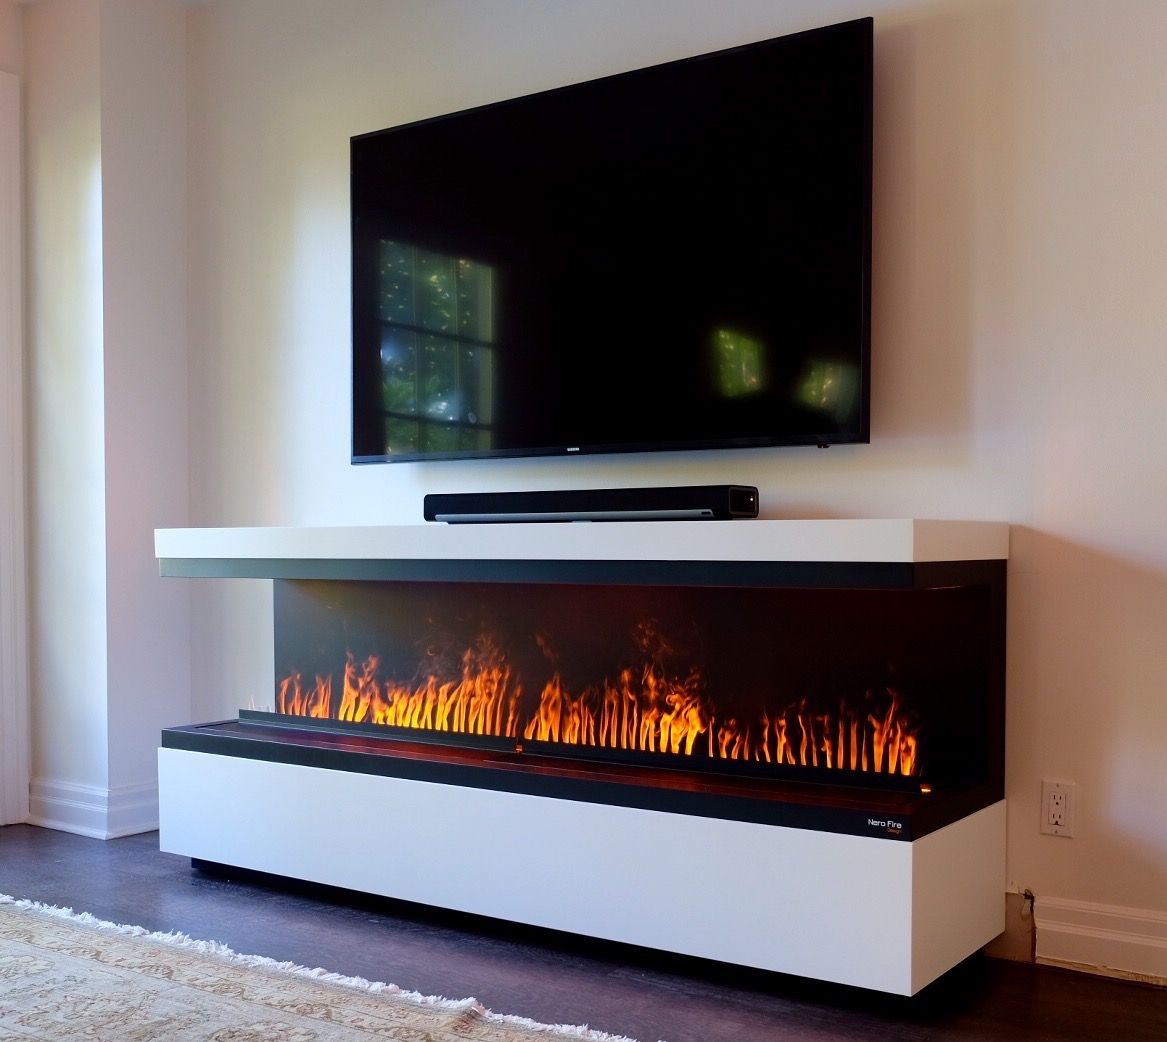 Fireplace with TV above. Water Vapor Technology Opti-Myst ...